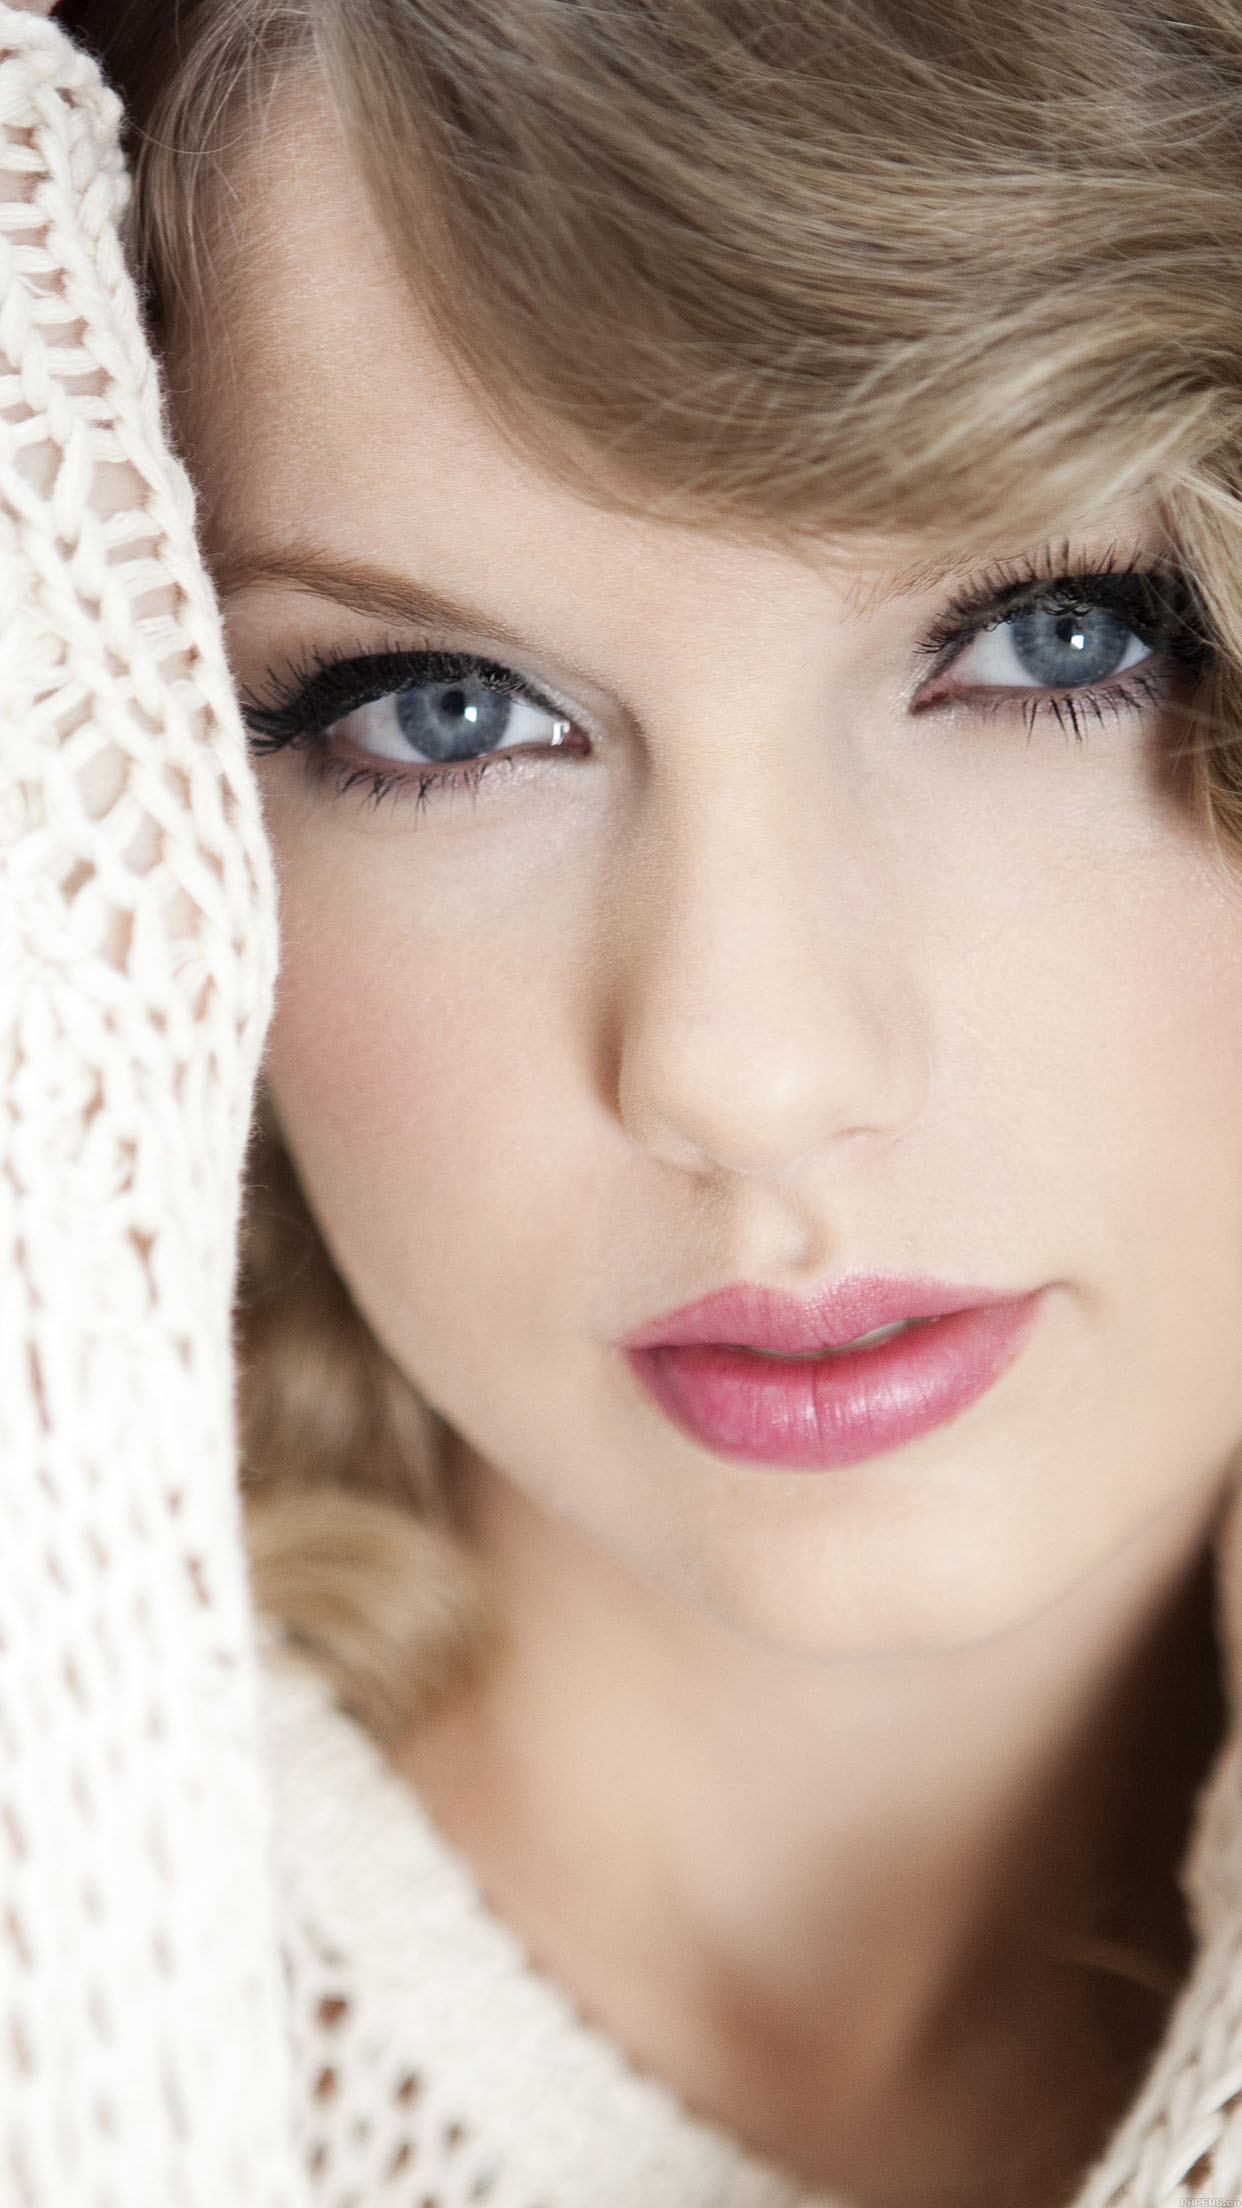 Wallpaper Taylor Swift Firl Face Music Android wallpaper